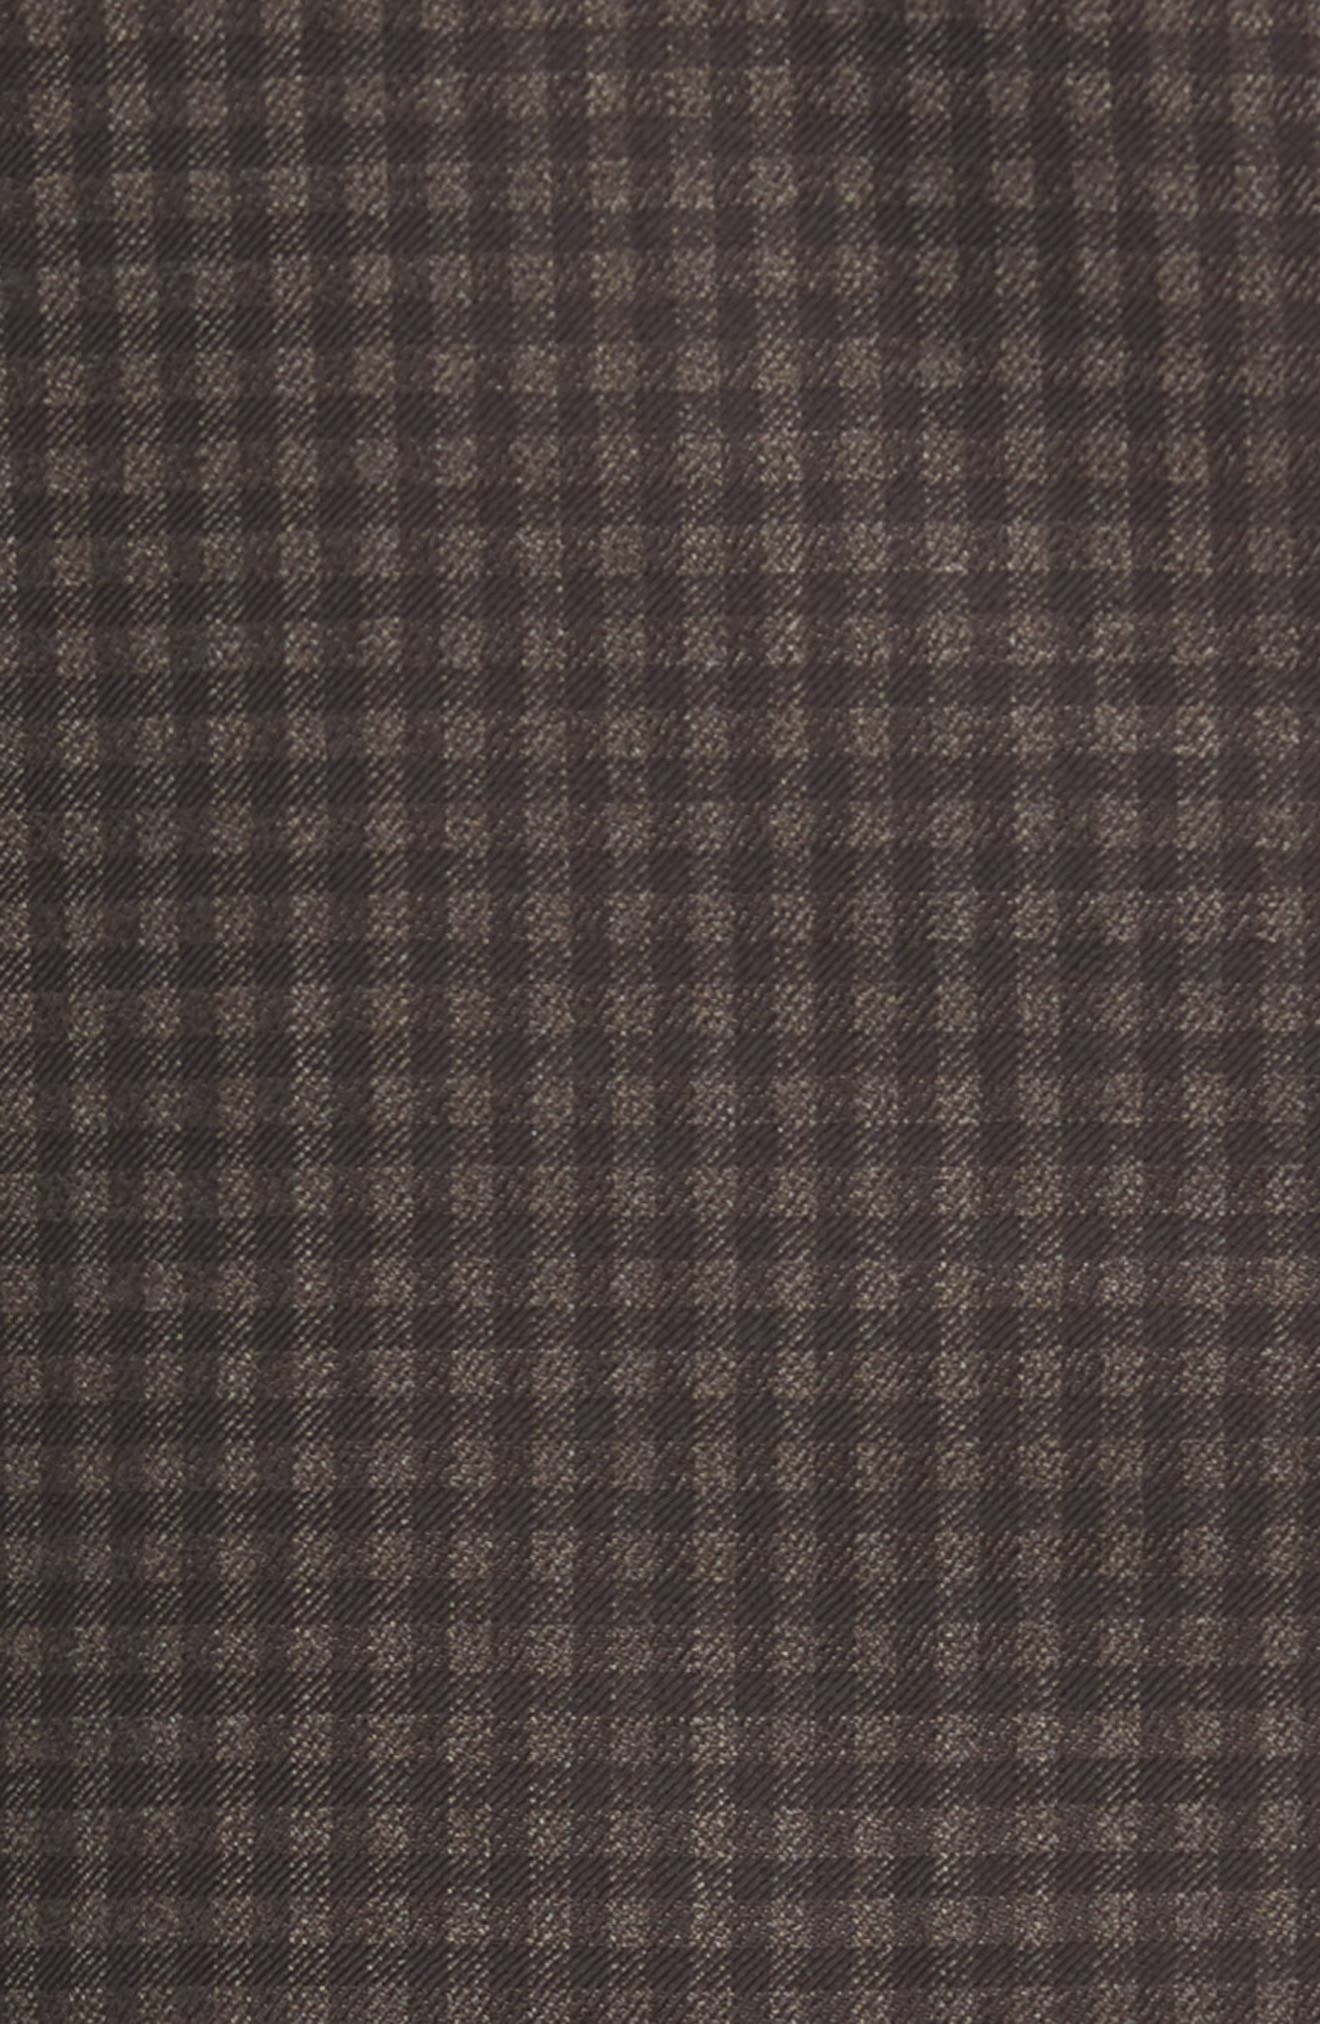 Traditional Fit Check Wool Sport Coat,                             Alternate thumbnail 4, color,                             Graphite